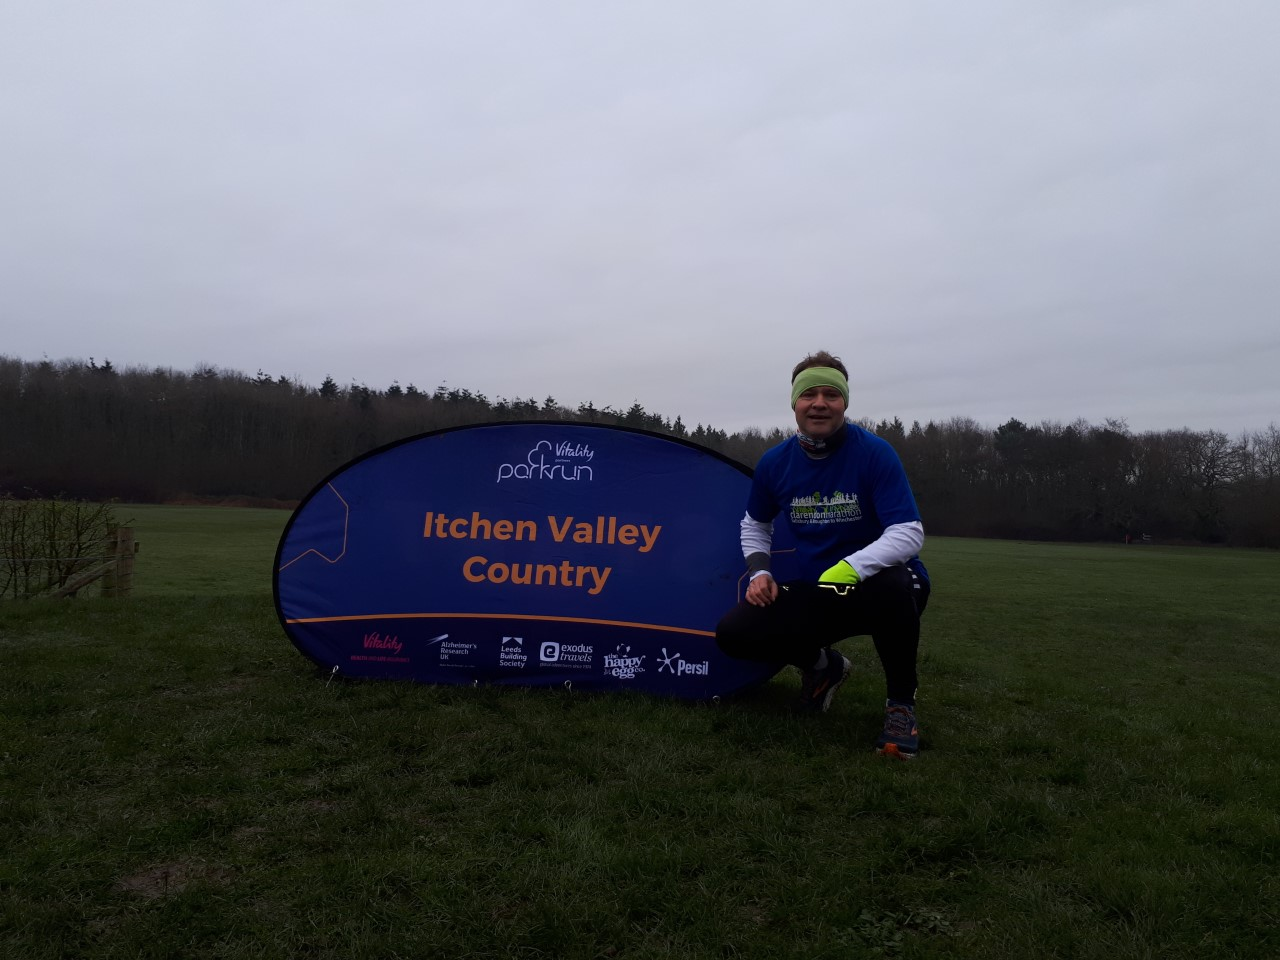 Image shows Tom Evison squatting down next to an Itchen Valley Country banner following a Parkrun